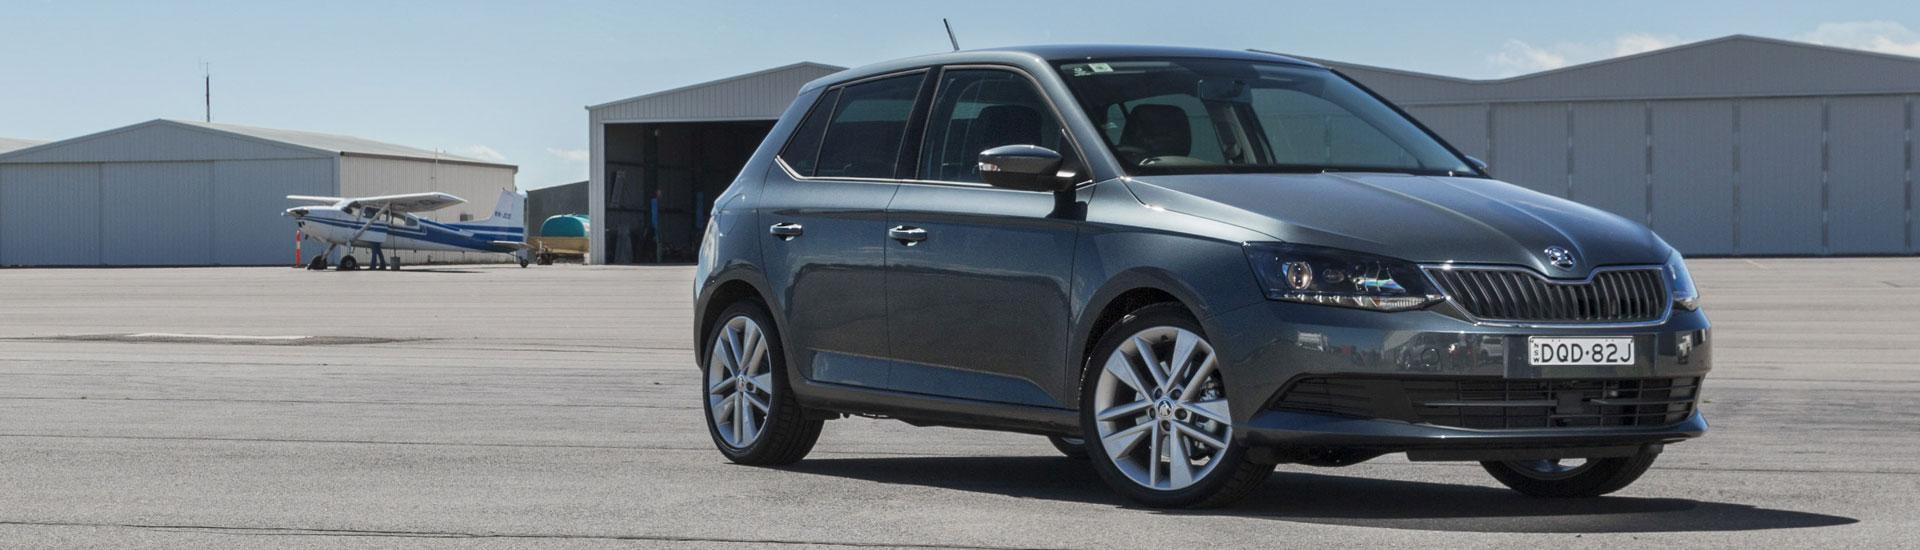 The SKODA Fabia wins Best First Car in the Carsales Car of the Year ...